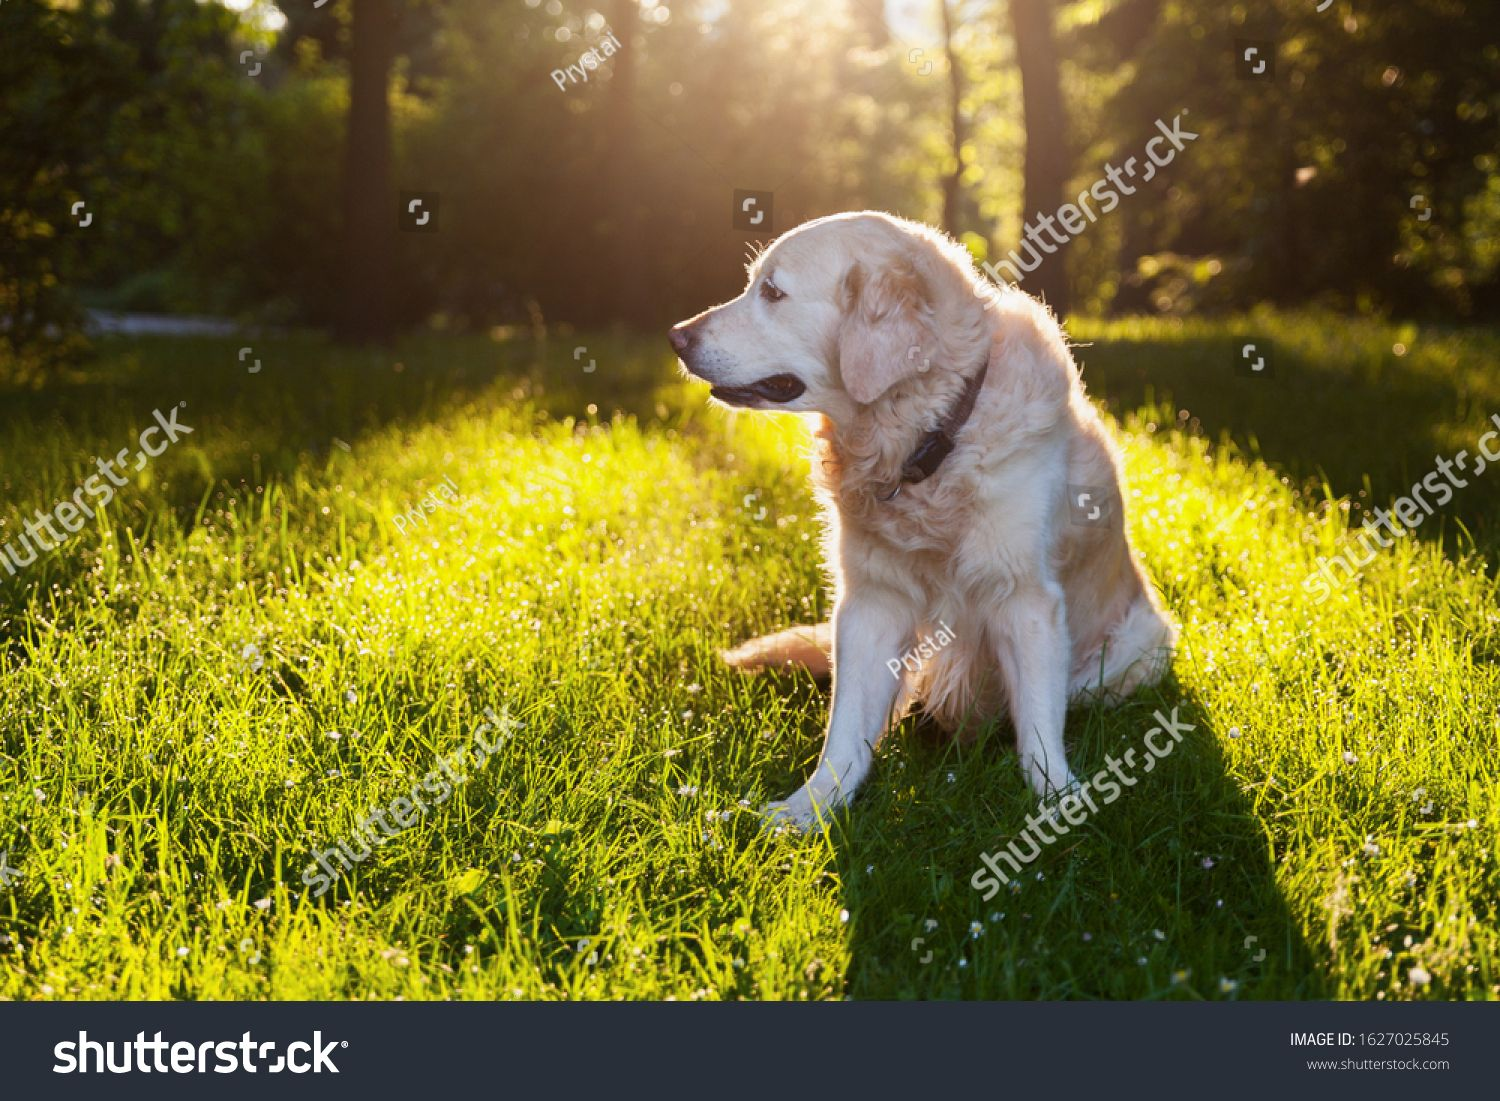 Golden Retriever Puppy Dog Sitting Outdoors On Green Grass With